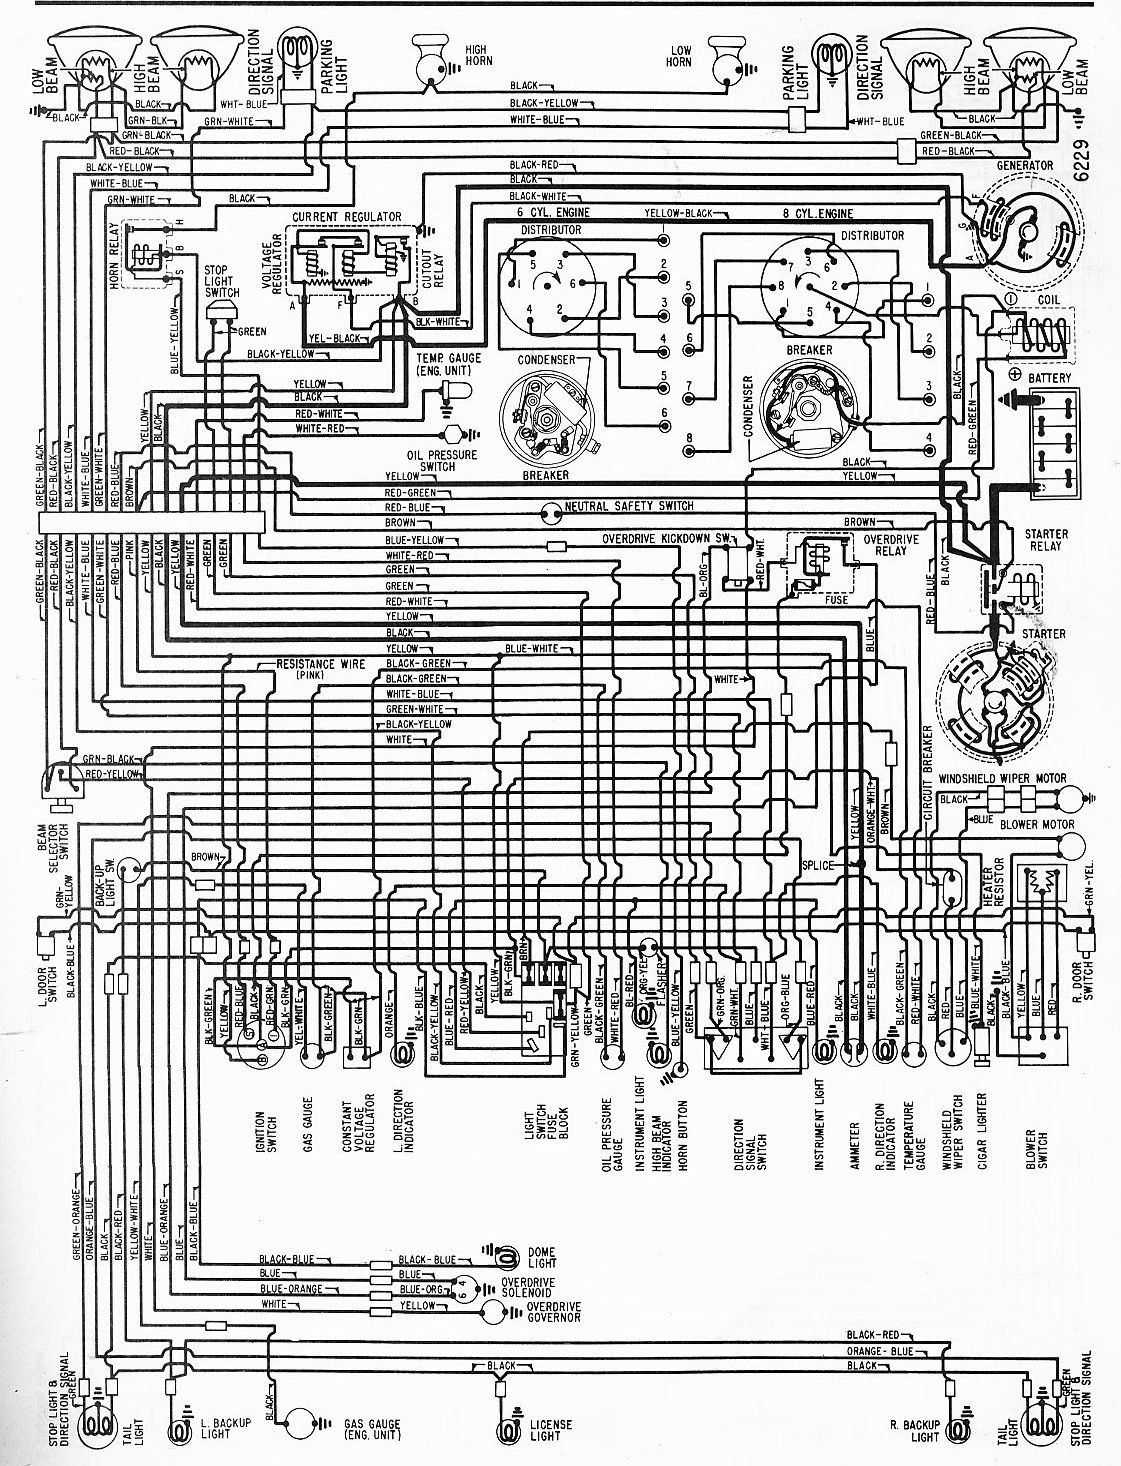 medium resolution of chevrolet c10 fuse box wiring diagram toolbox 1985 chevy c10 fuse box location 1970 chevy c10